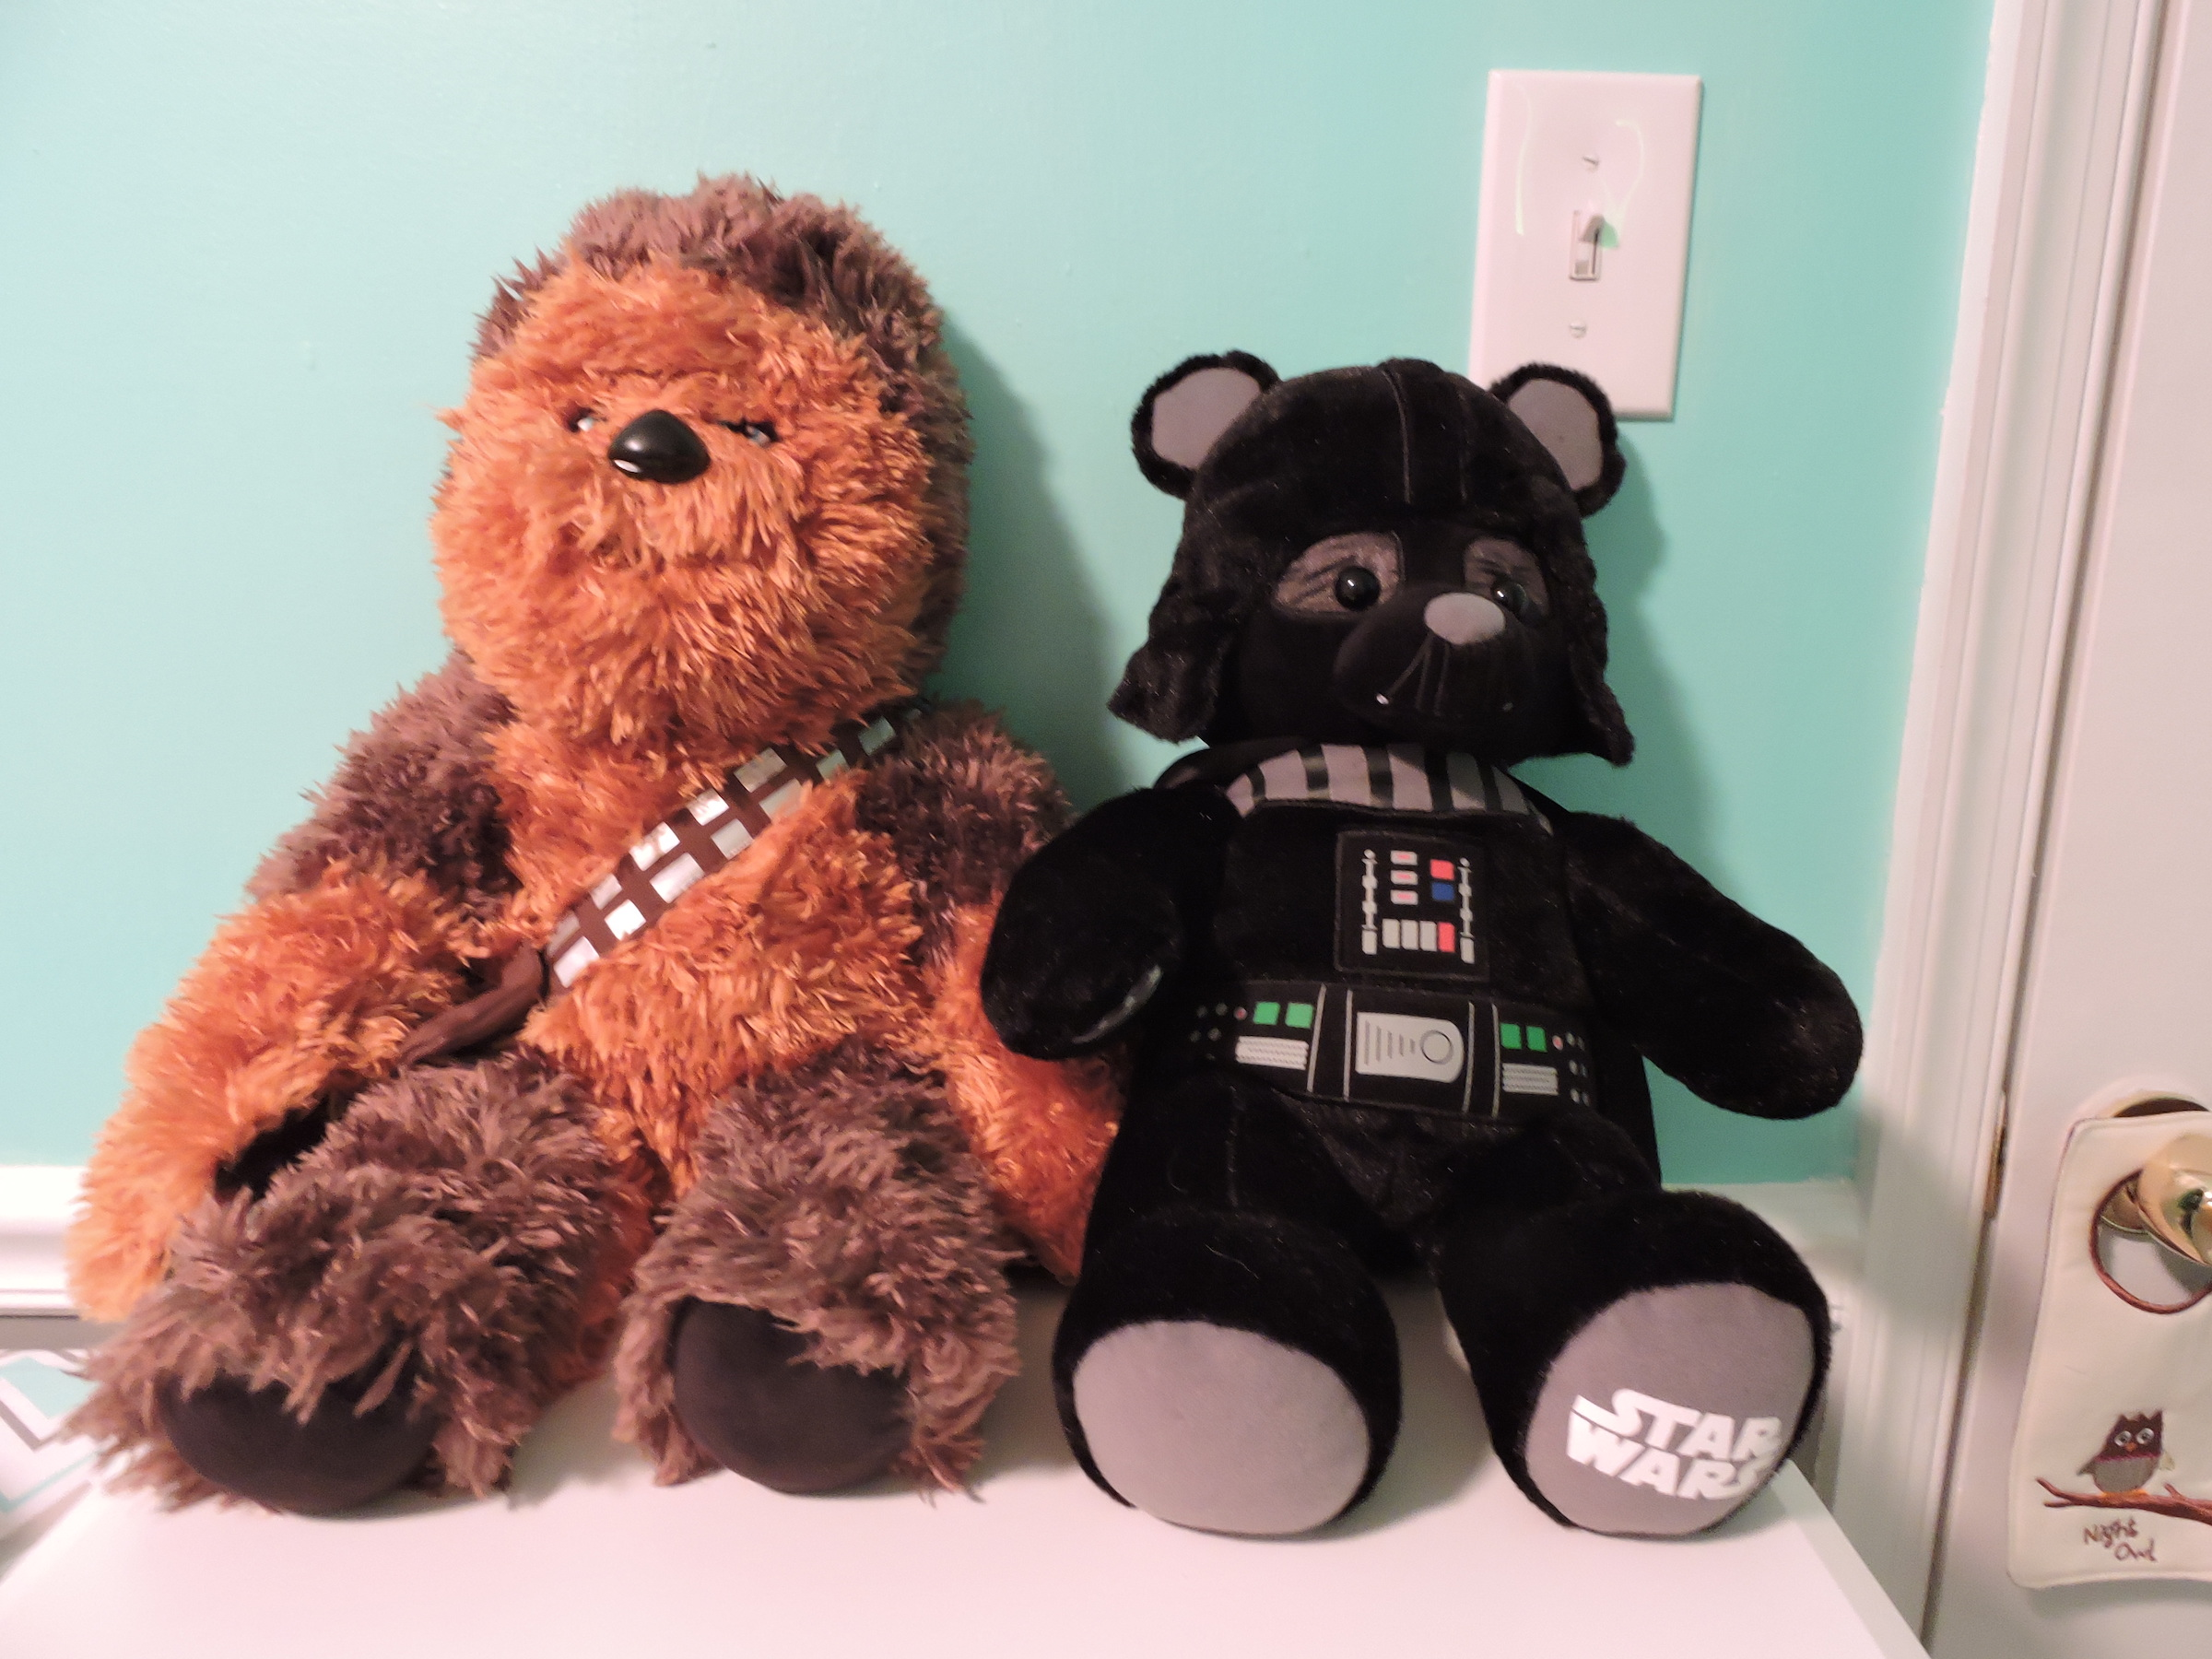 Teddy bears depicting Chewbacca and Darth Vader